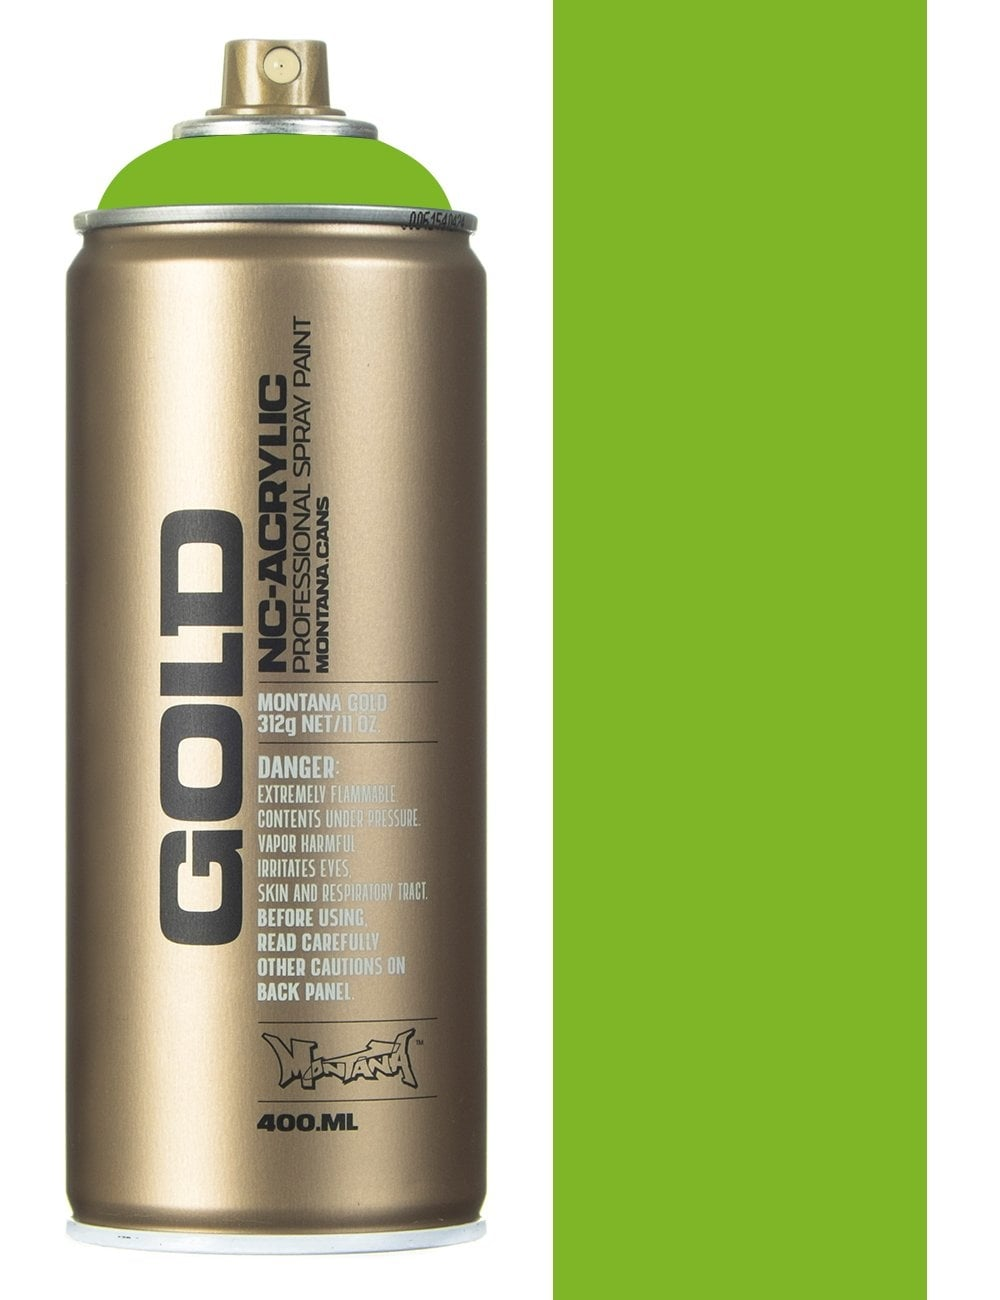 montana gold shock green light spray paint 400ml spray. Black Bedroom Furniture Sets. Home Design Ideas